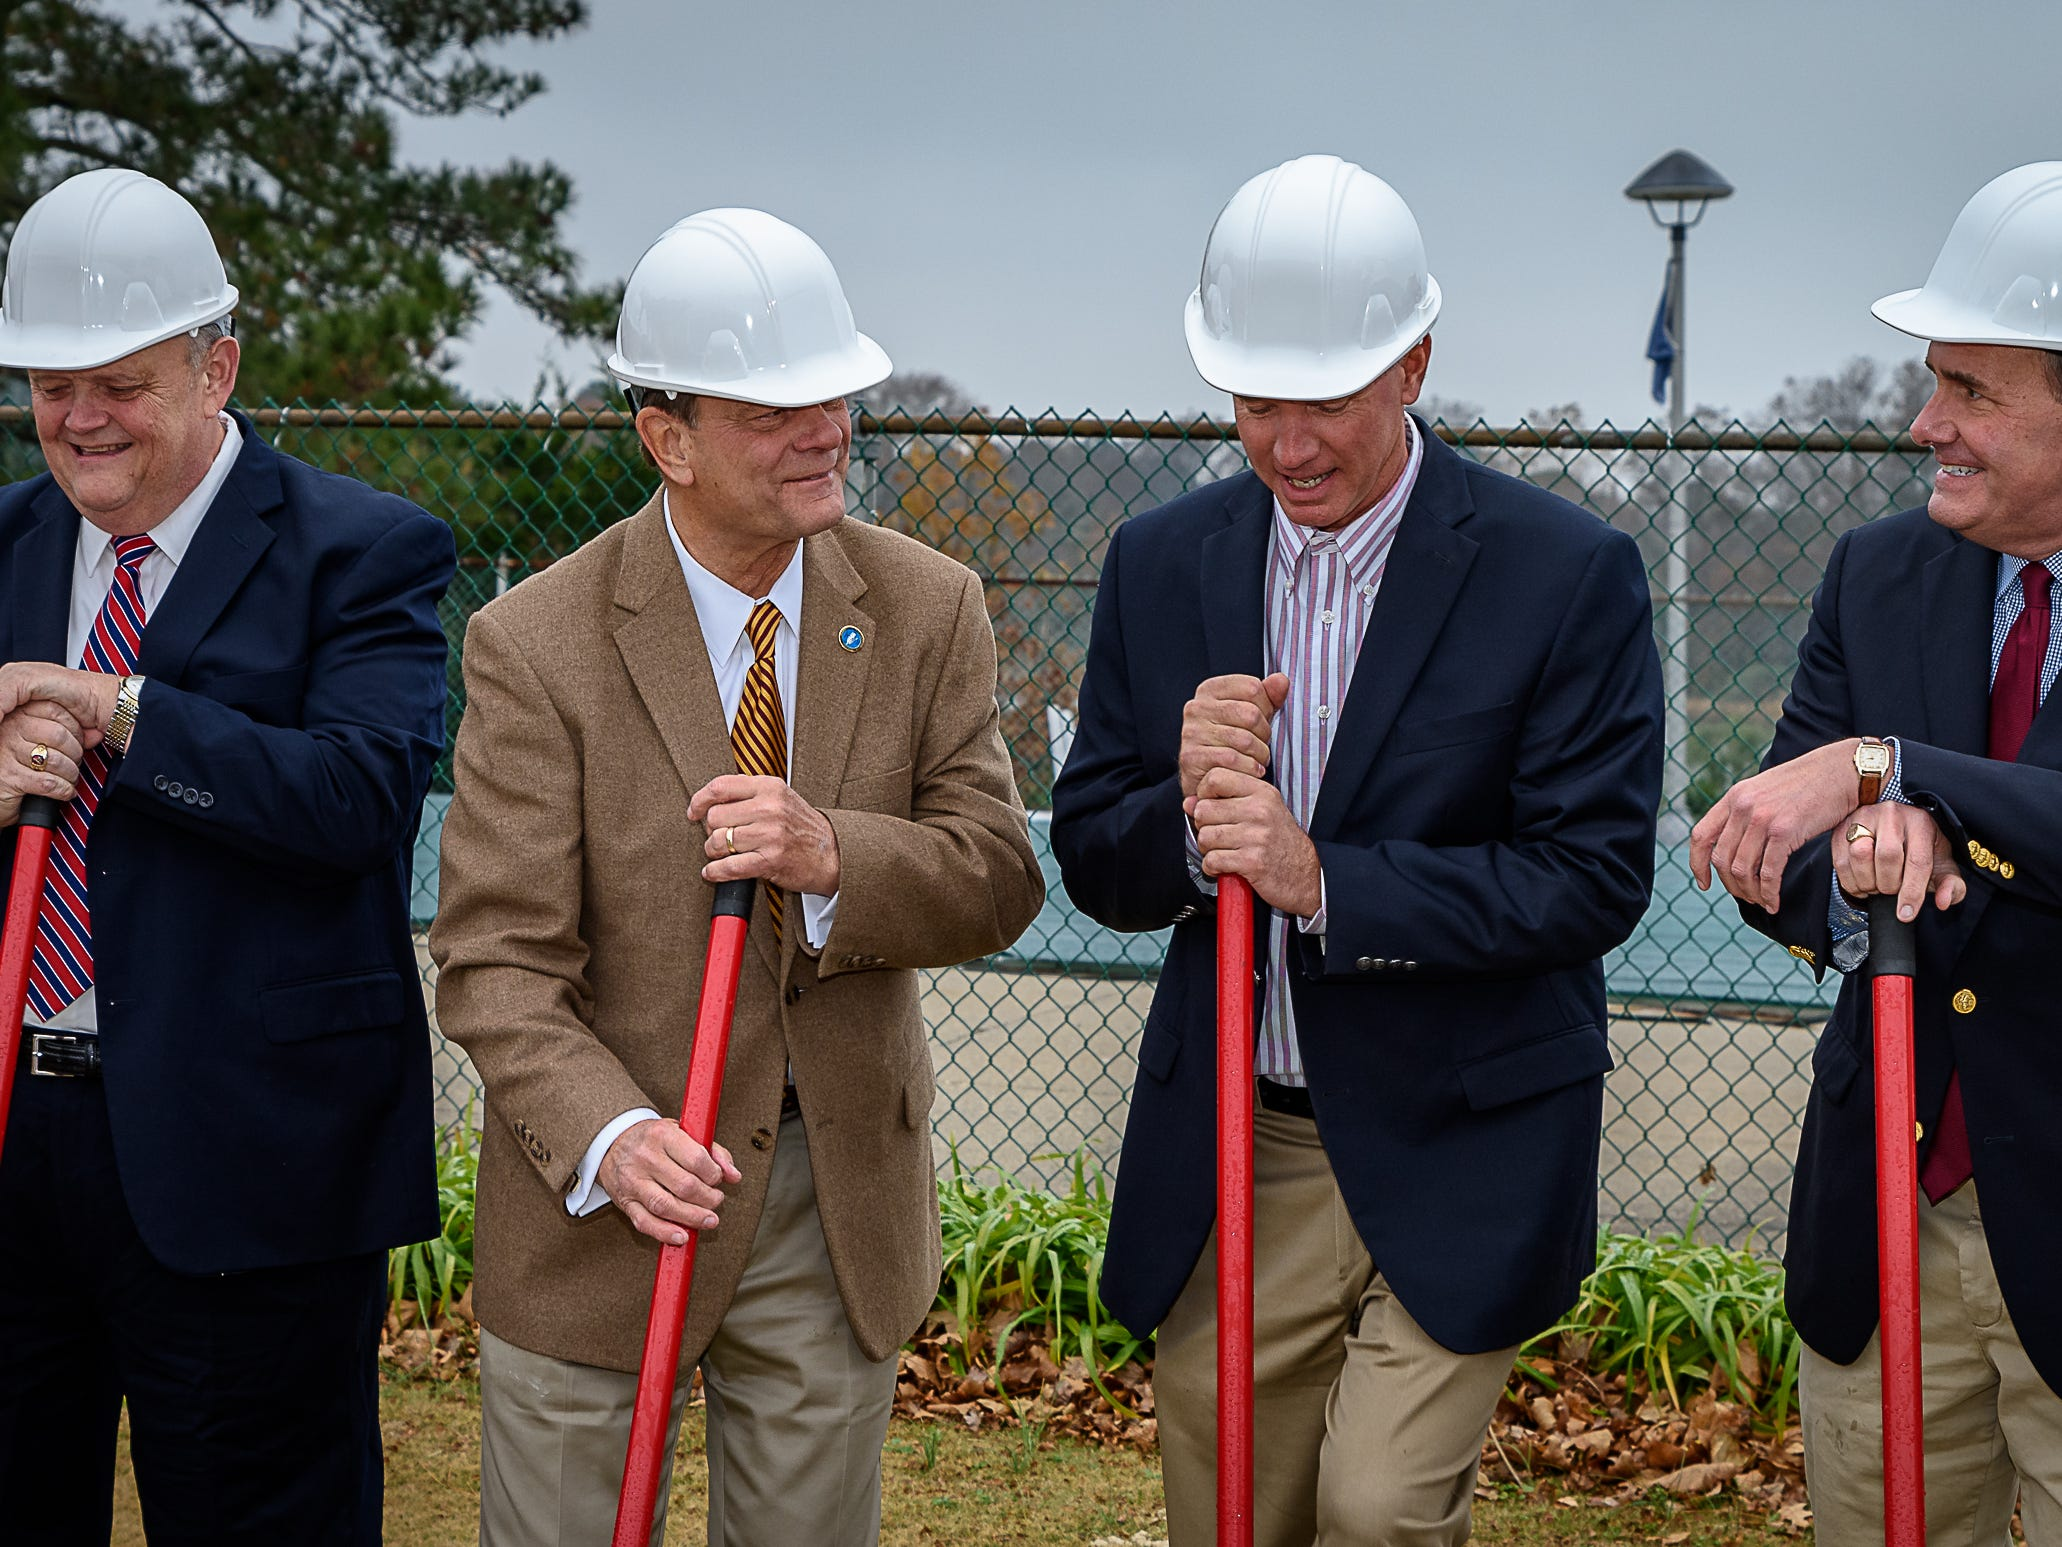 Local elected officials get ready to break ground for the new Eastern Shore Yacht and Country Club clubhouse in Melfa on Saturday. From left are: Accomack County Supervisor Donald Hart, Northampton County Supervisor  Spencer Murray, State Delegagte Bob Bloxom Jr. and State Senator Lynwood Lewis.